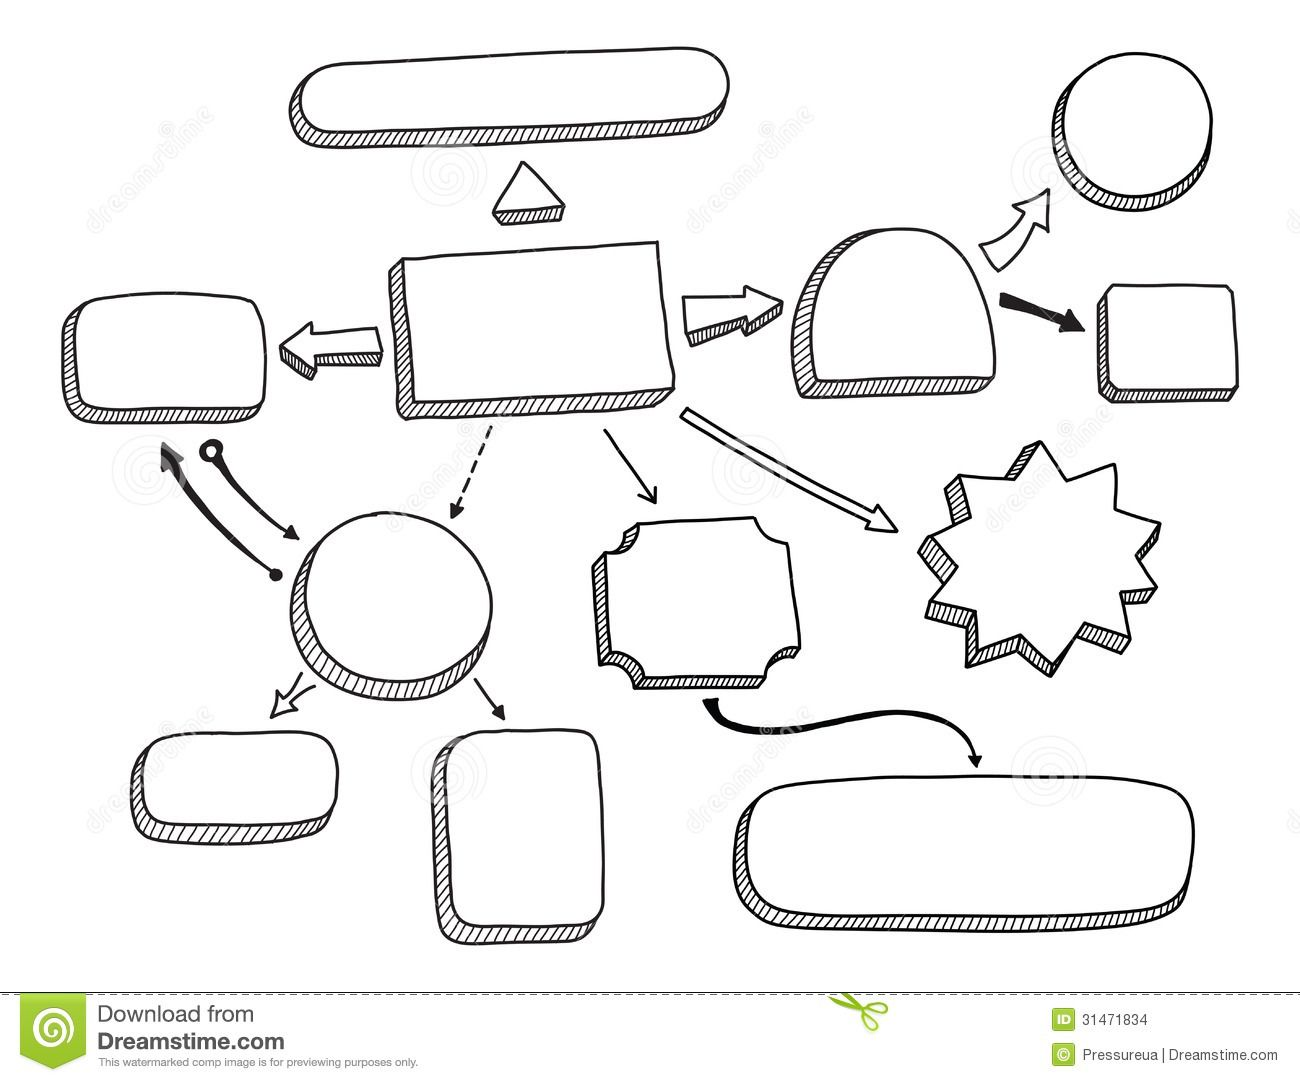 flowchart-vector-illustration-hand-drawn-mind-map-space